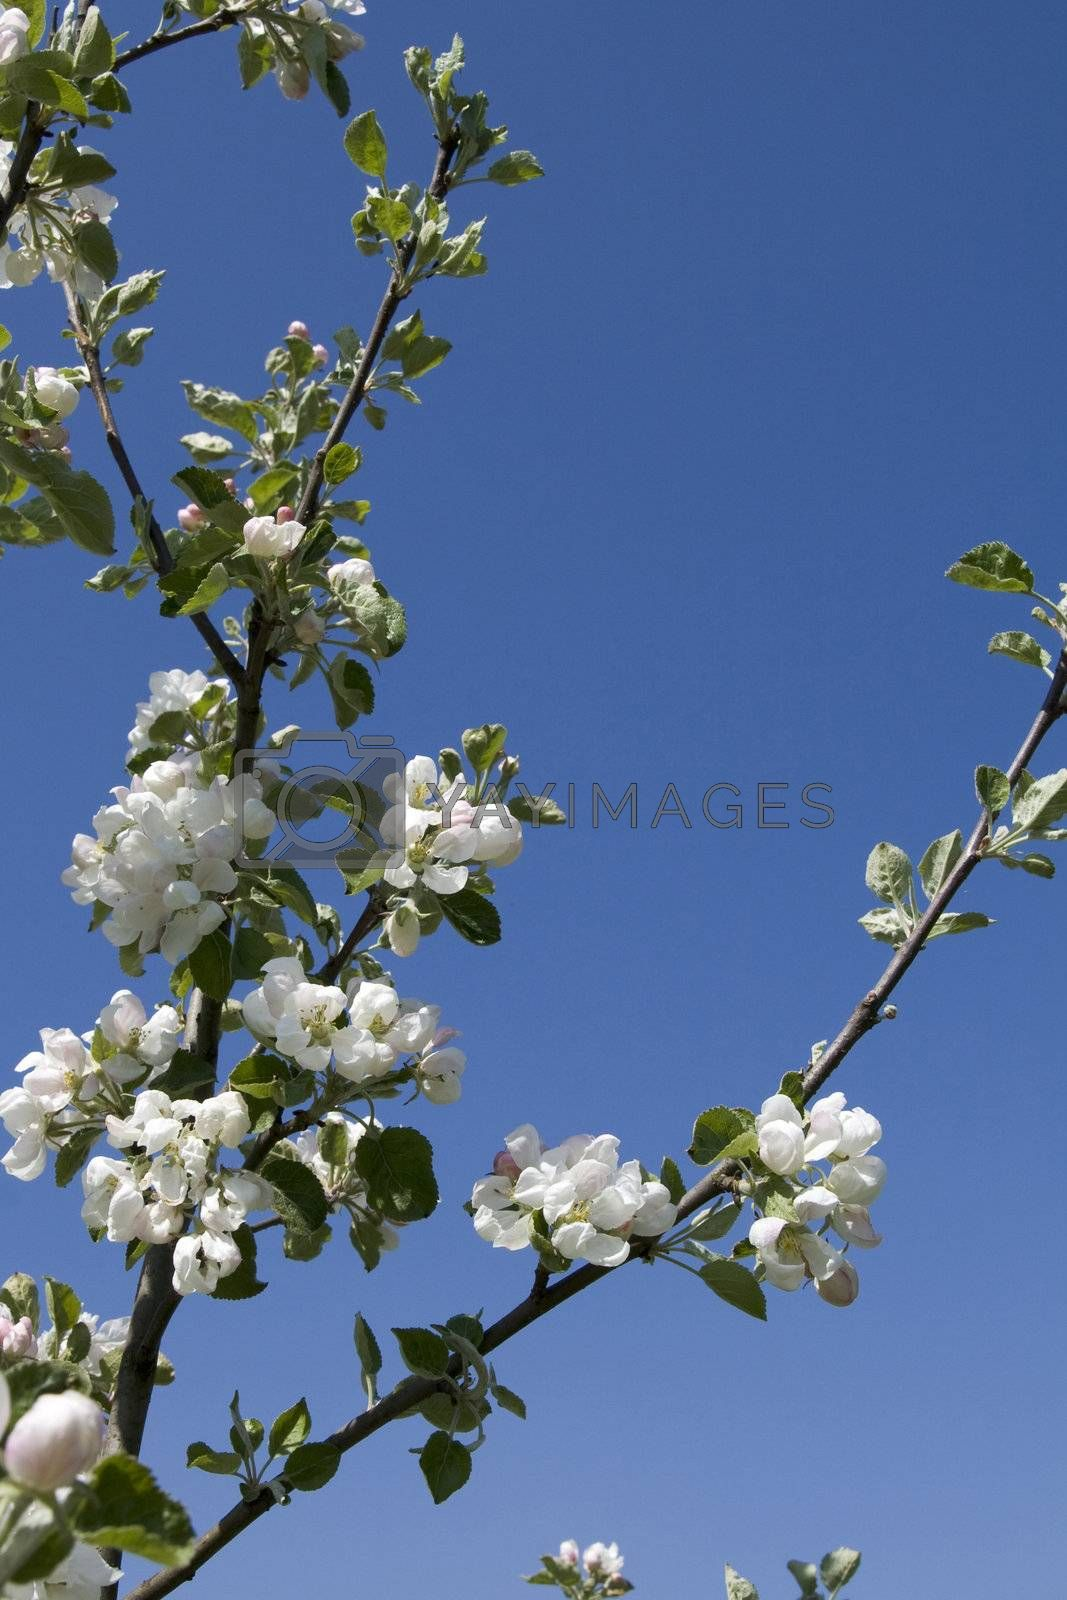 Apple-tree branch on blue sky background